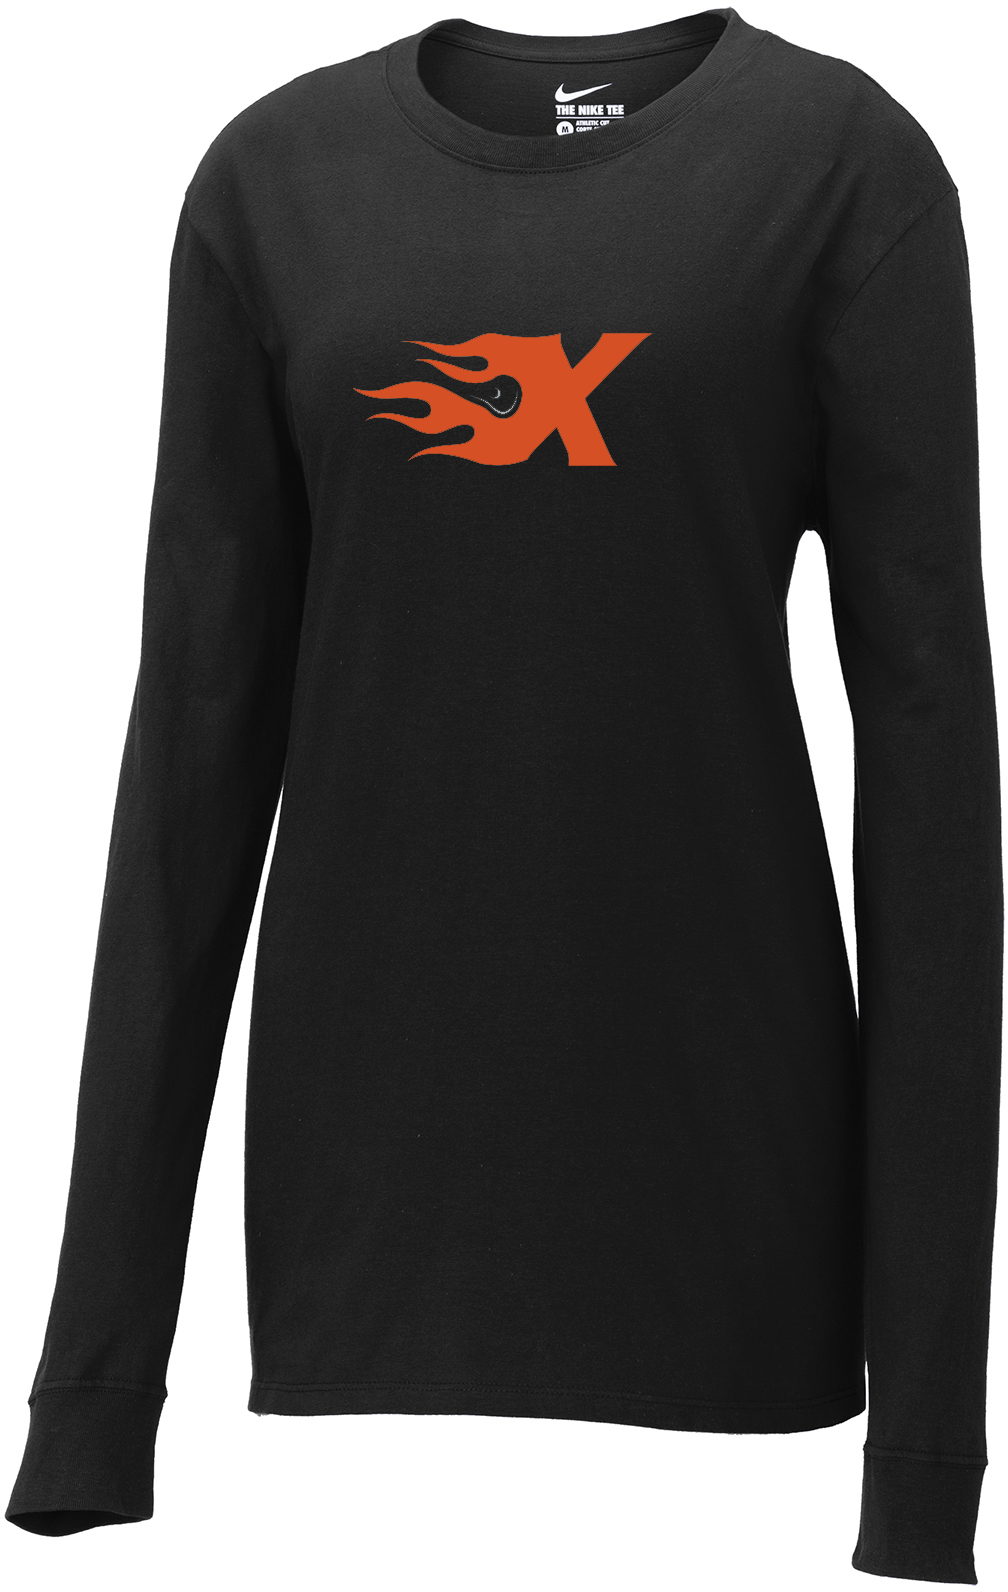 Xtreme Lacrosse Nike Ladies Black Long Sleeve Tee